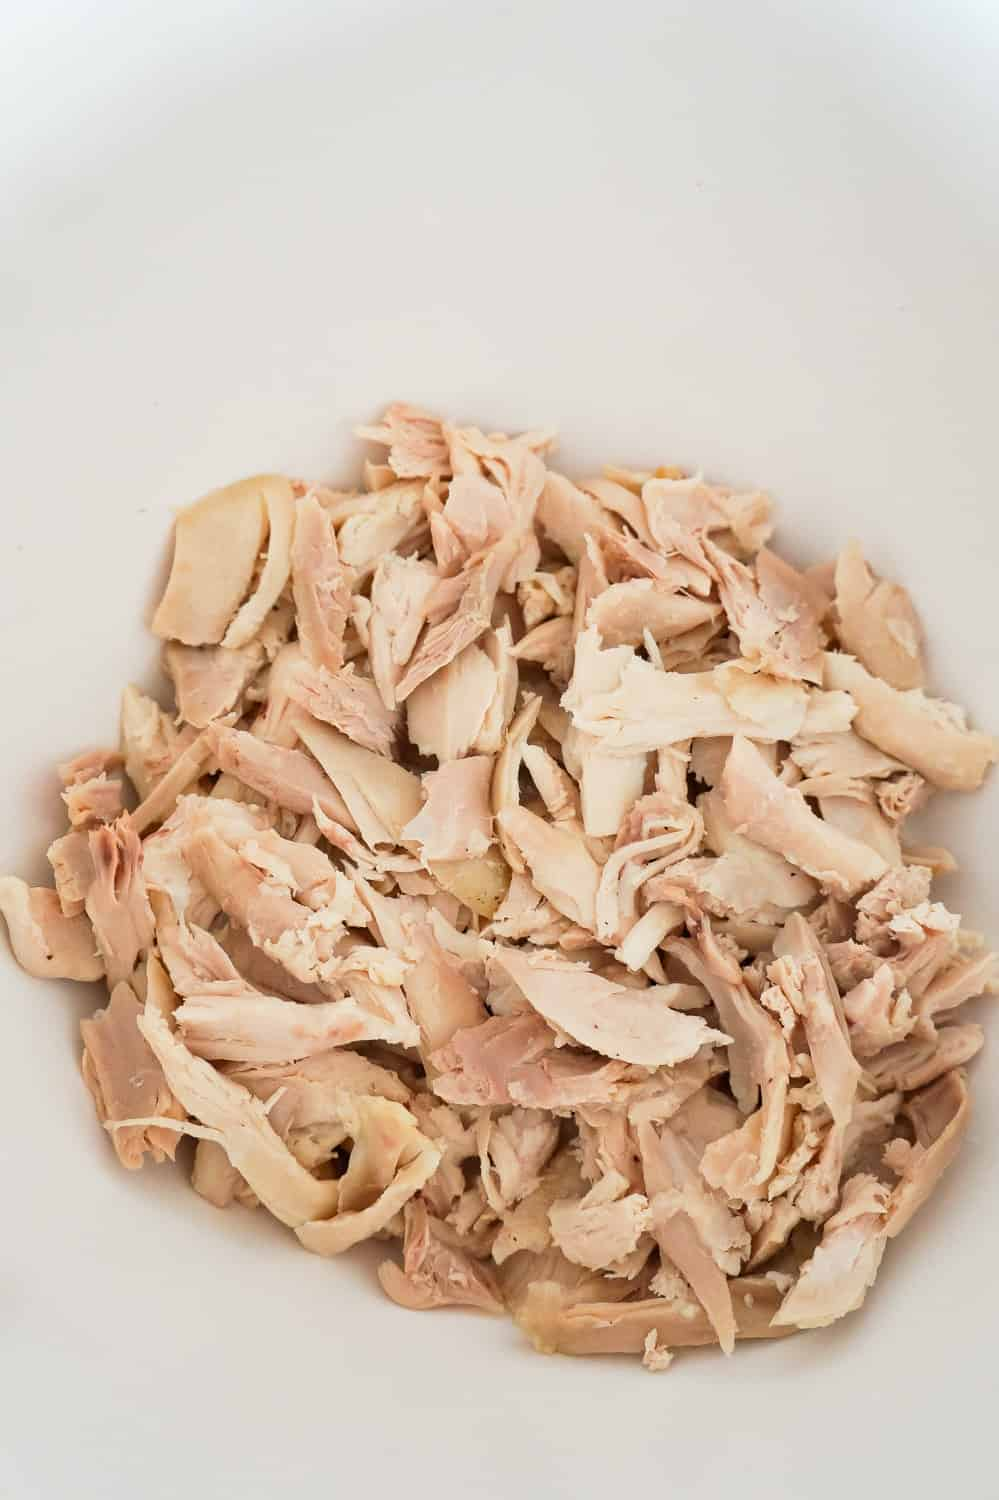 shredded rotisserie chicken in a mixing bowl